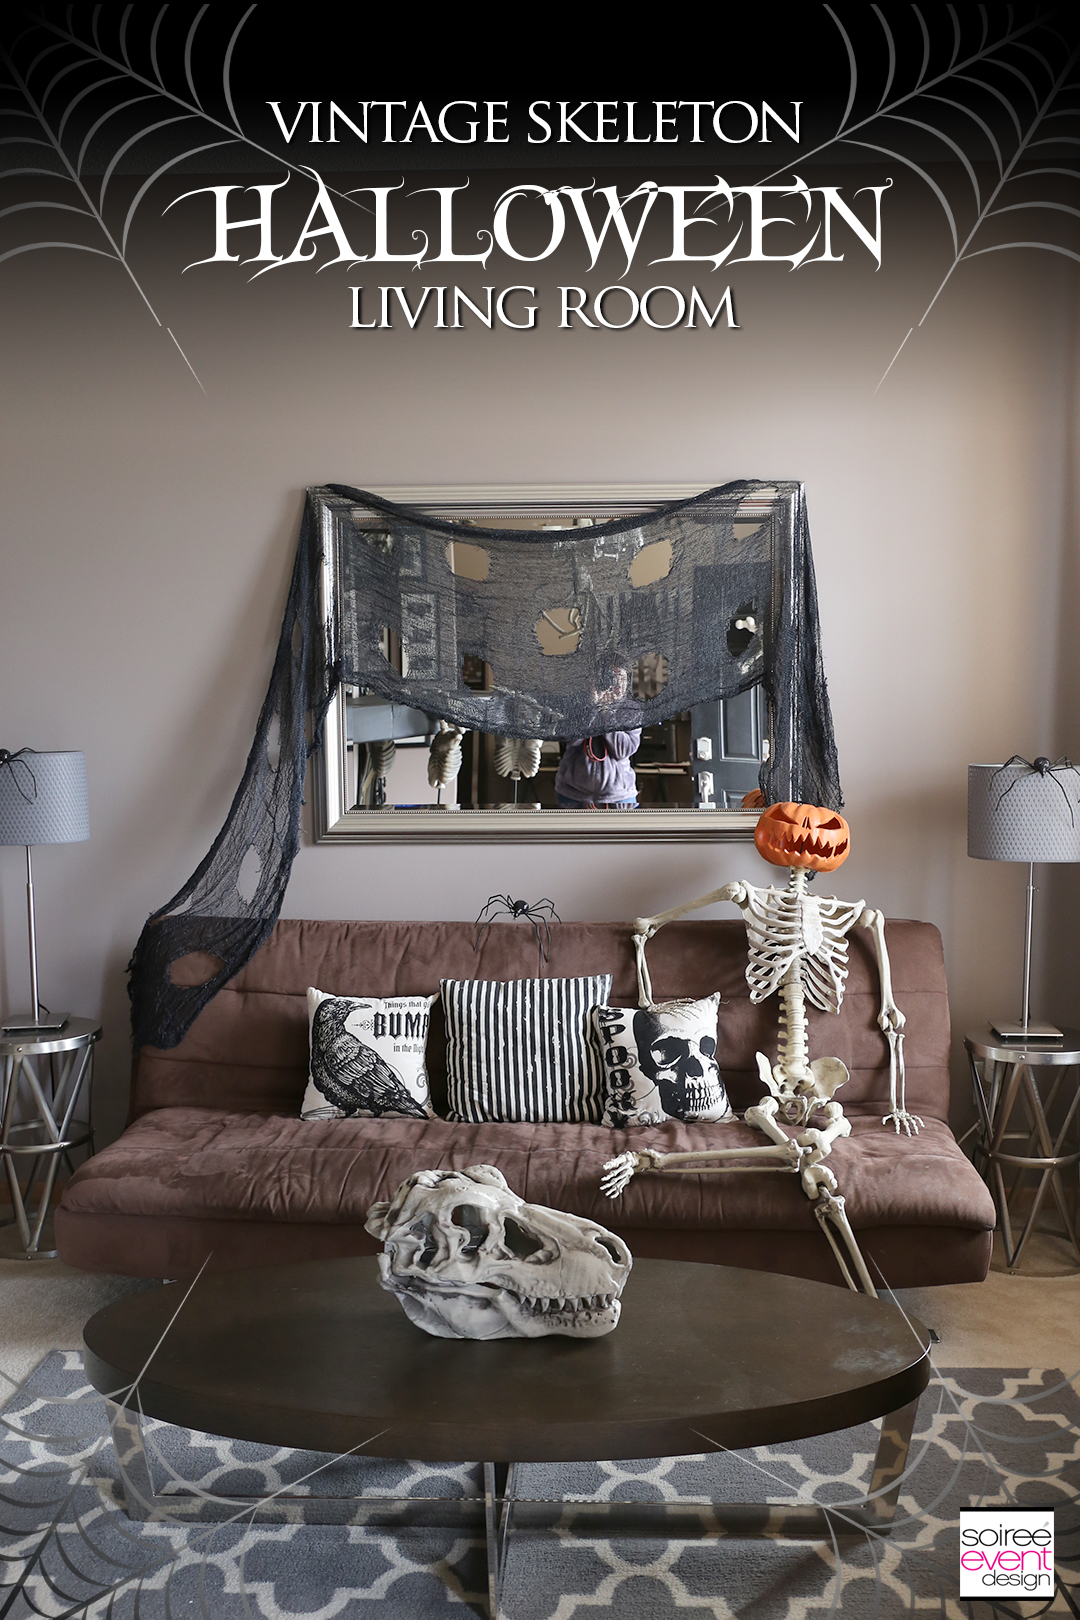 Vintage Halloween Decorating Ideas - Living Room